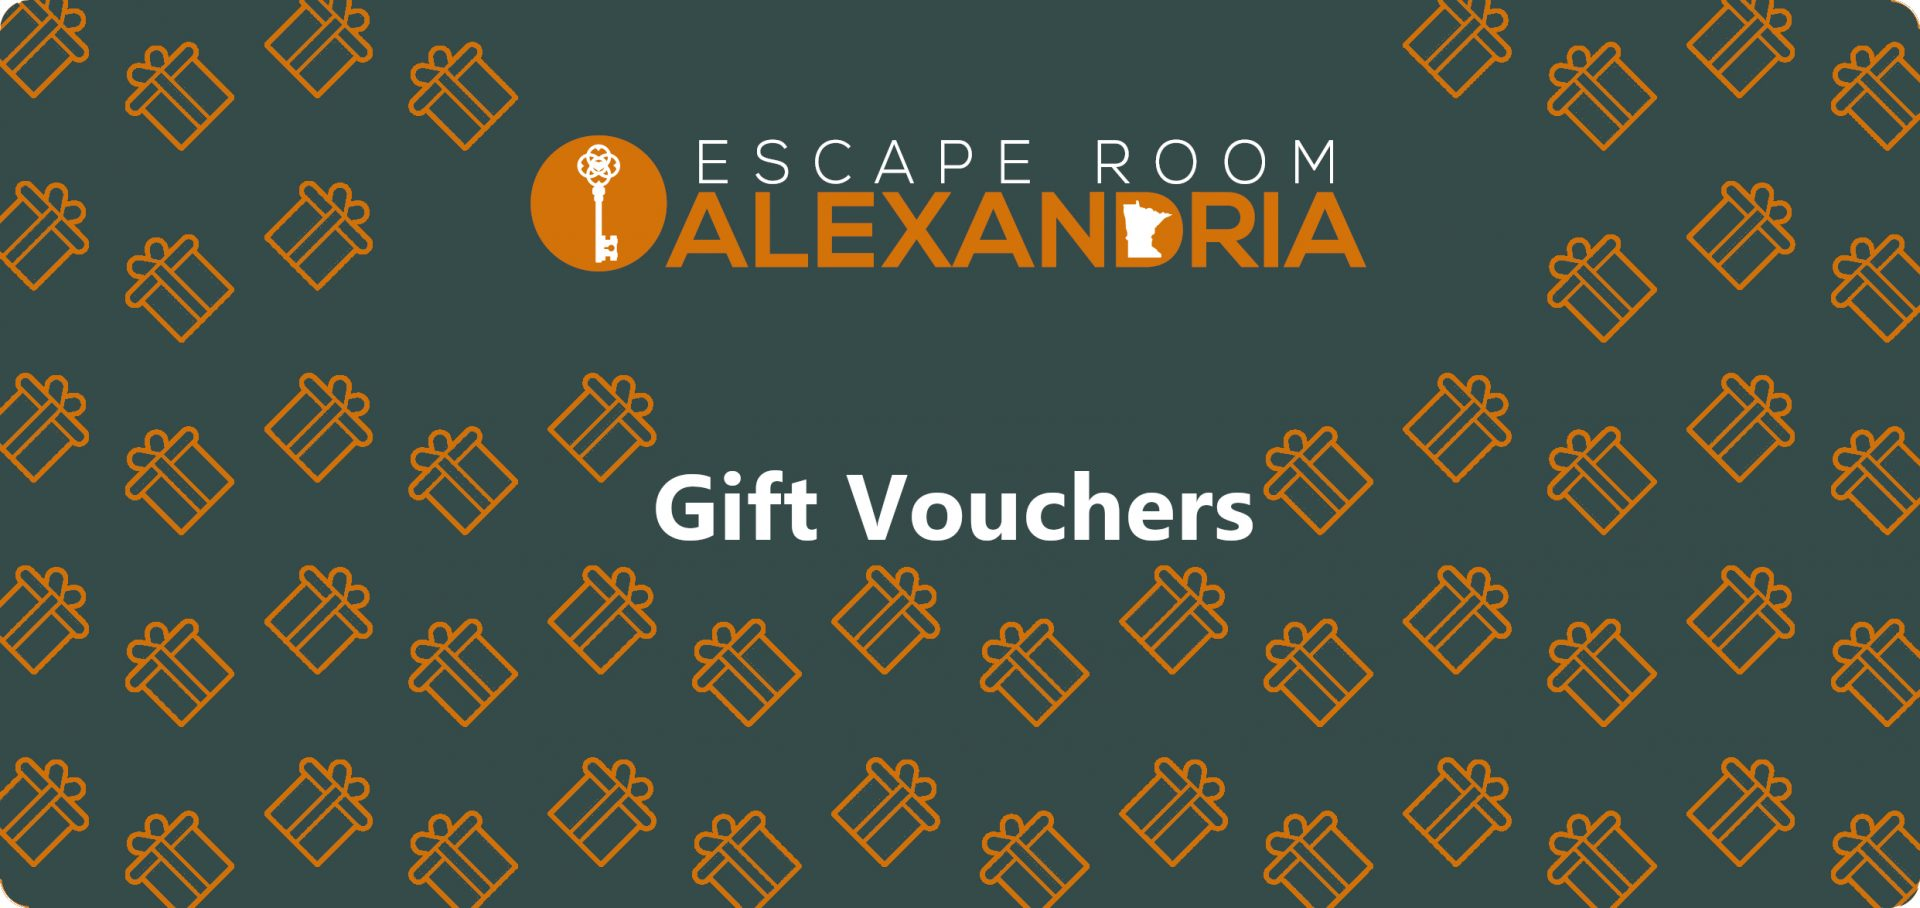 Escape Room Alexandria virtual Gift Vouchers